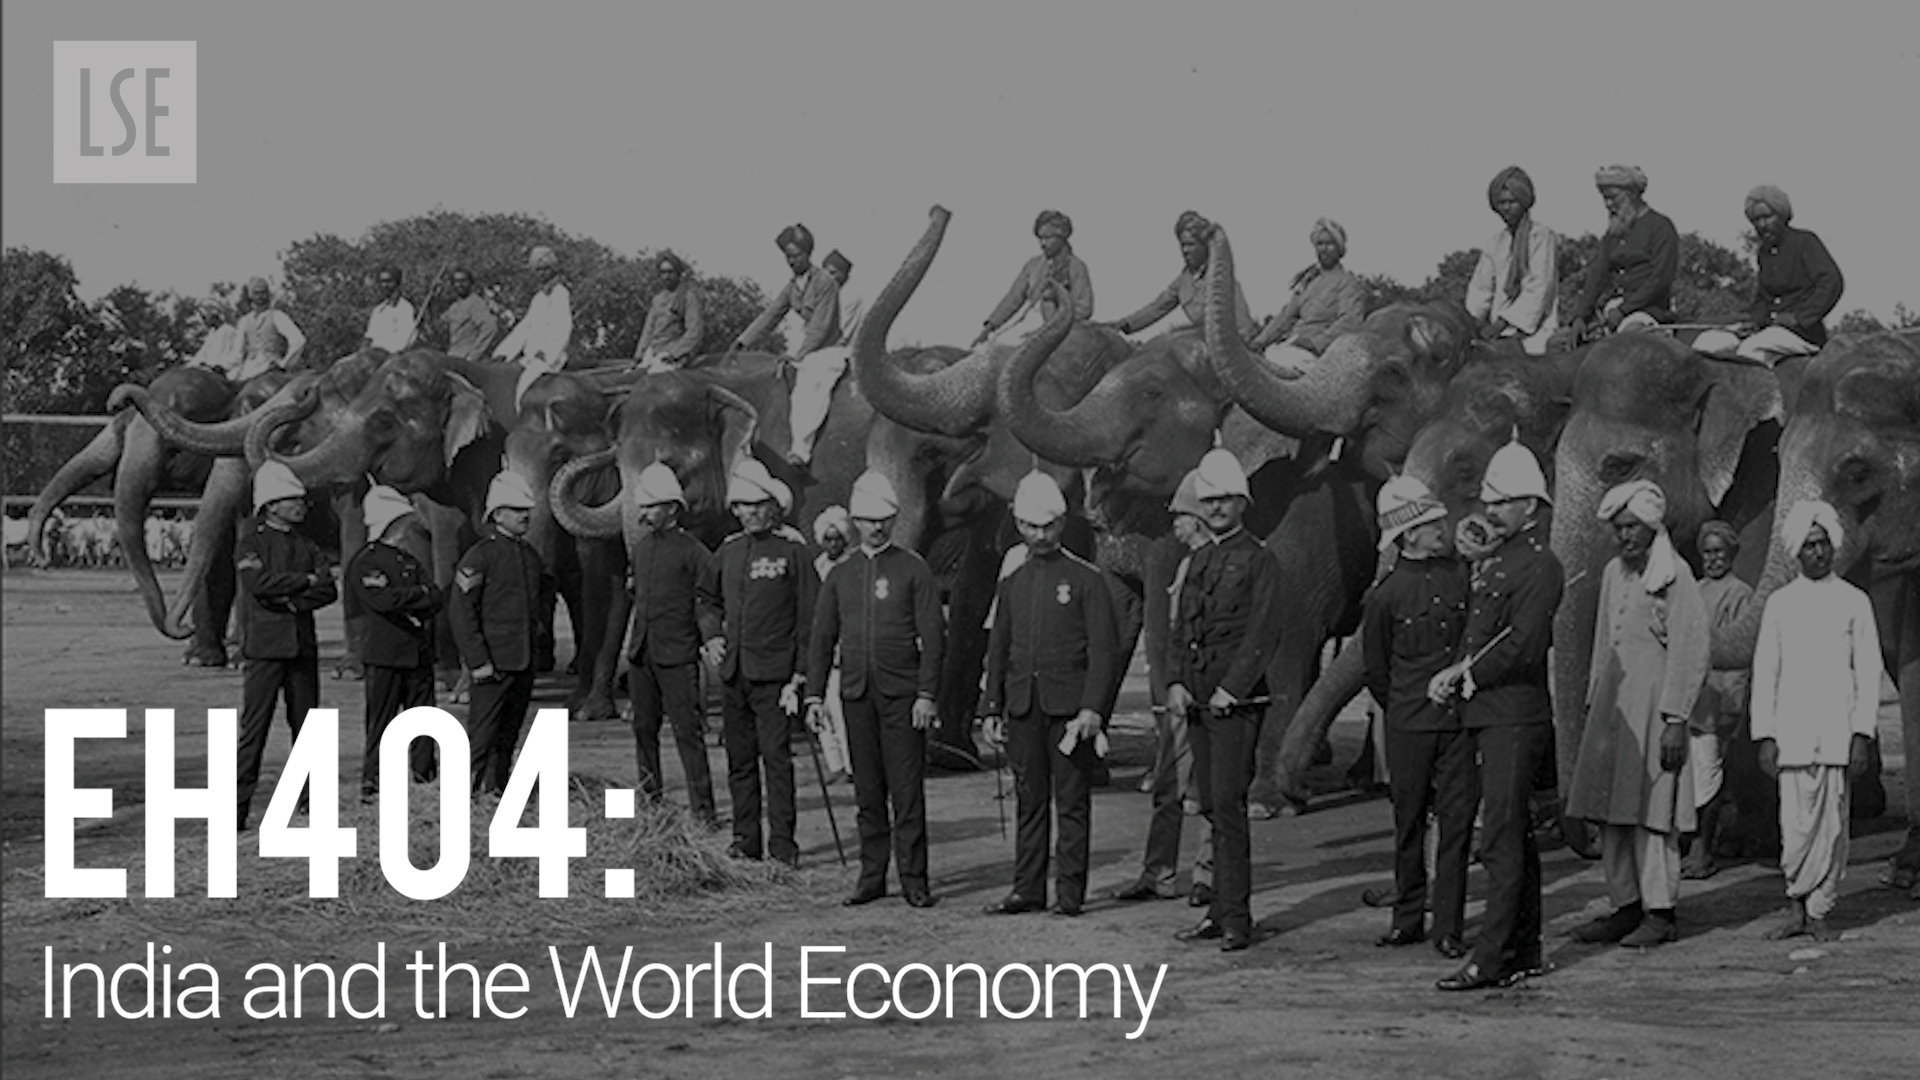 EH404 India and the World Economy